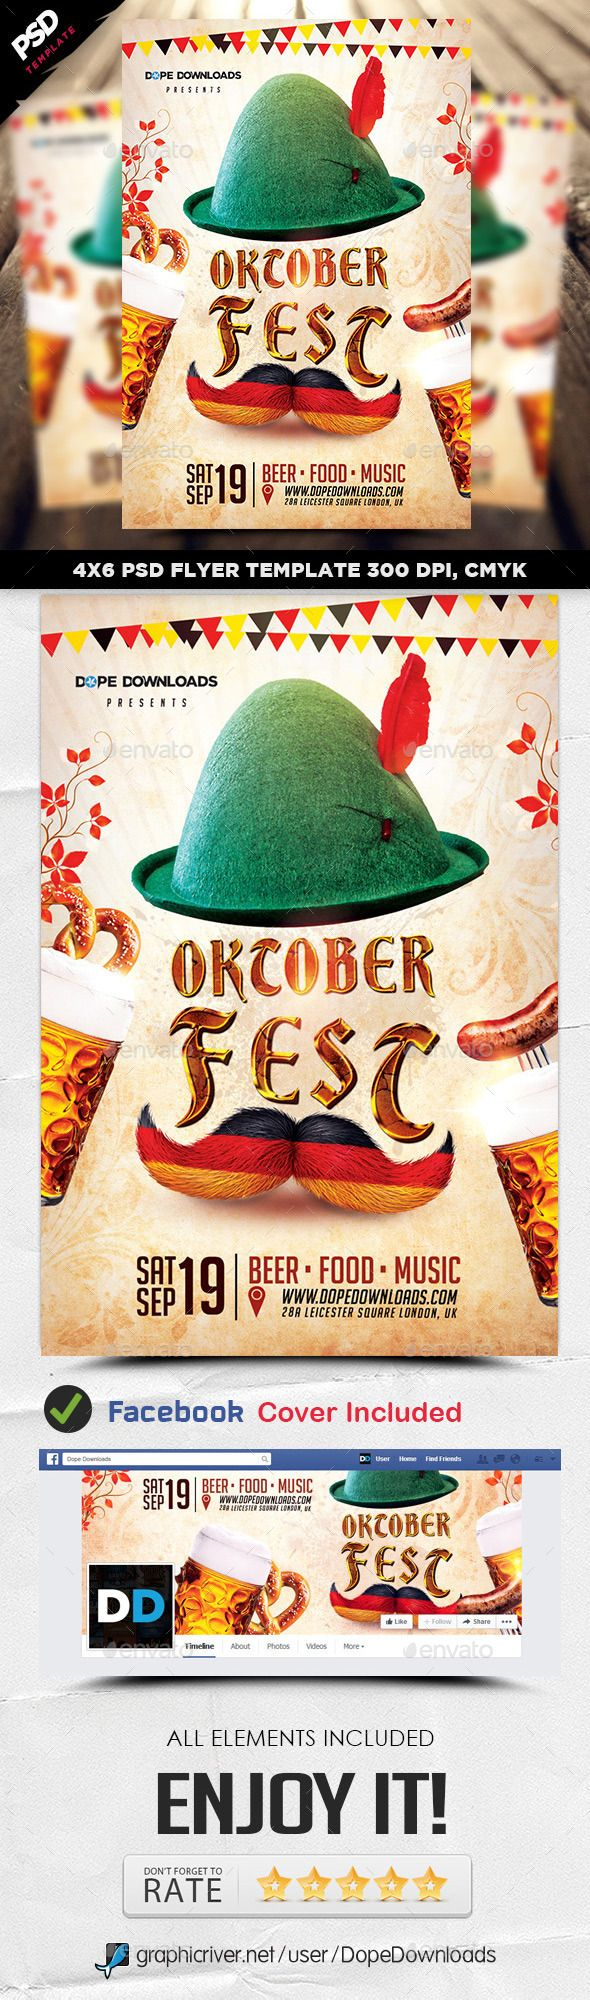 Oktoberfest 2015 Flyer Template #design Download: http://graphicriver.net/item/oktoberfest-2015-flyer-template/12712334?ref=ksioks